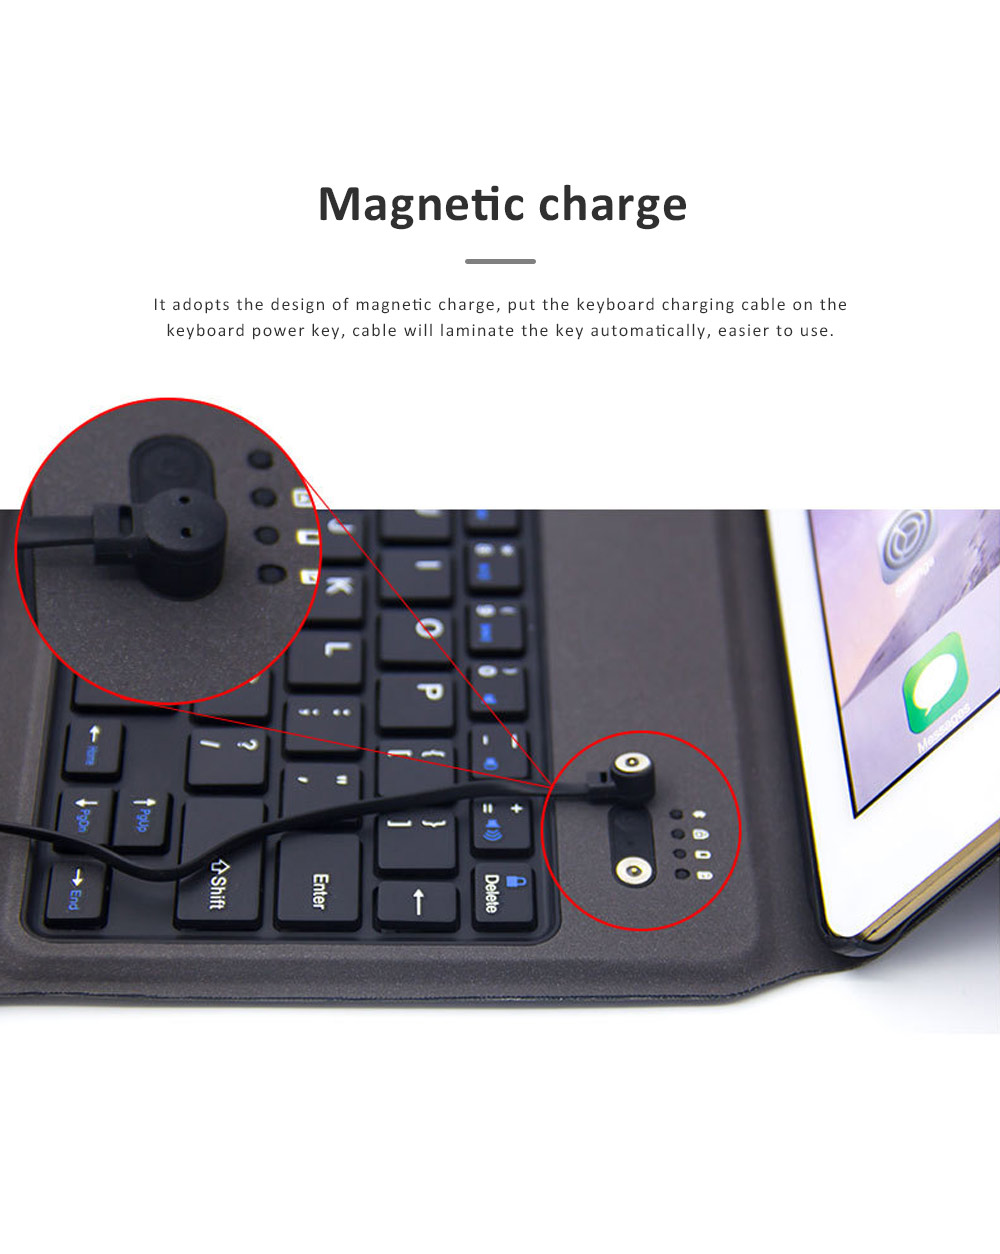 Bluetooth Keyboard Magnetic Flip Case for iPad Air 1, iPad Air 2, iPad Pro 9.7, iPad 9.7 2018, iPad 9.7 2017, Ultra- Thin Split Type New iPad 9.7 Colorful Backlit External Bluetooth Protective Cove 1